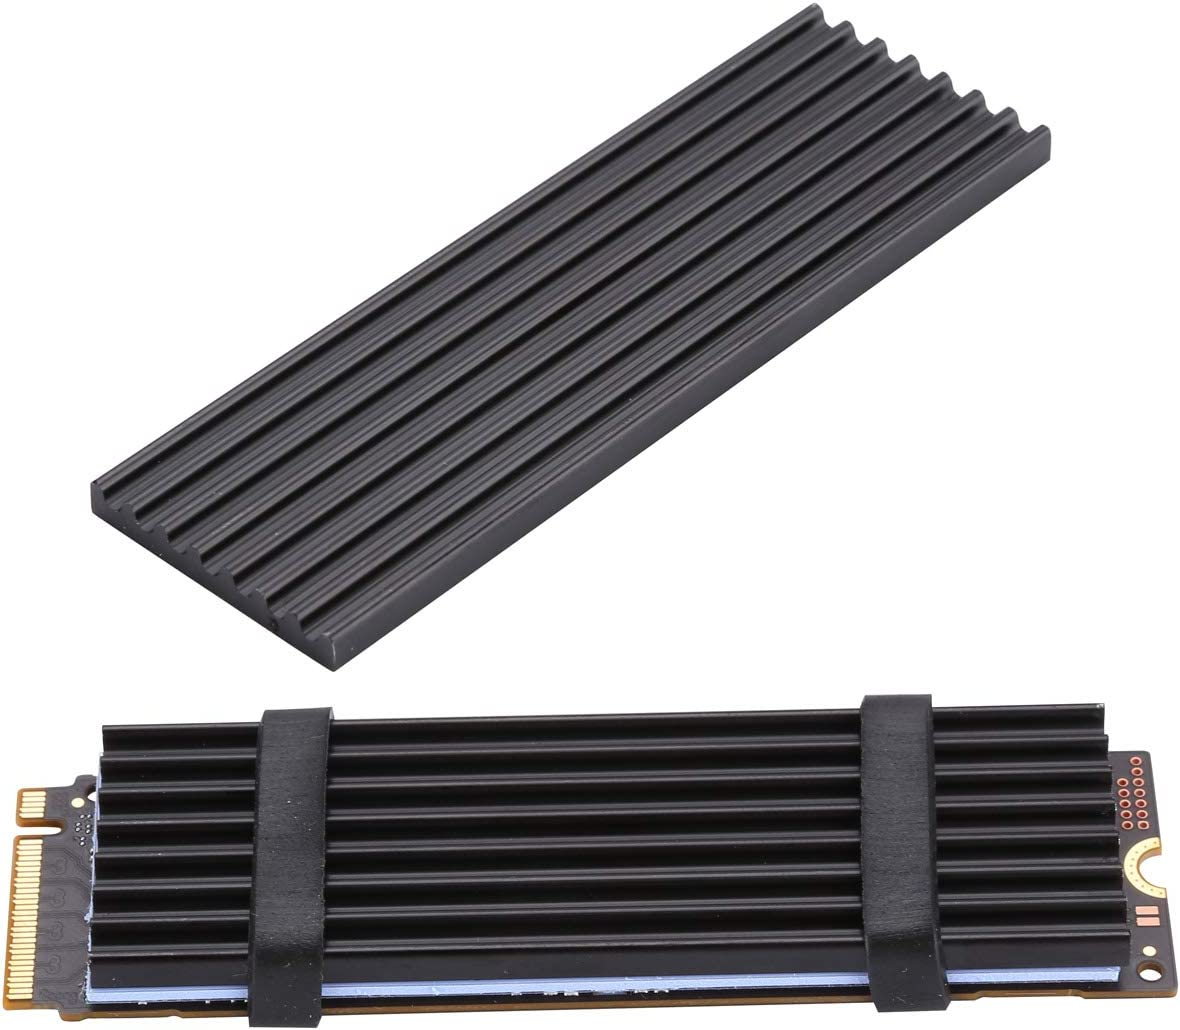 Awxlumv 2 Pcs m.2 Heatsink nvme 2280 SSD with Silicone Thermal Pad,DIY m2 Cooler 8 Fins for PCIe, Laptop PC Memory Cooling -Black